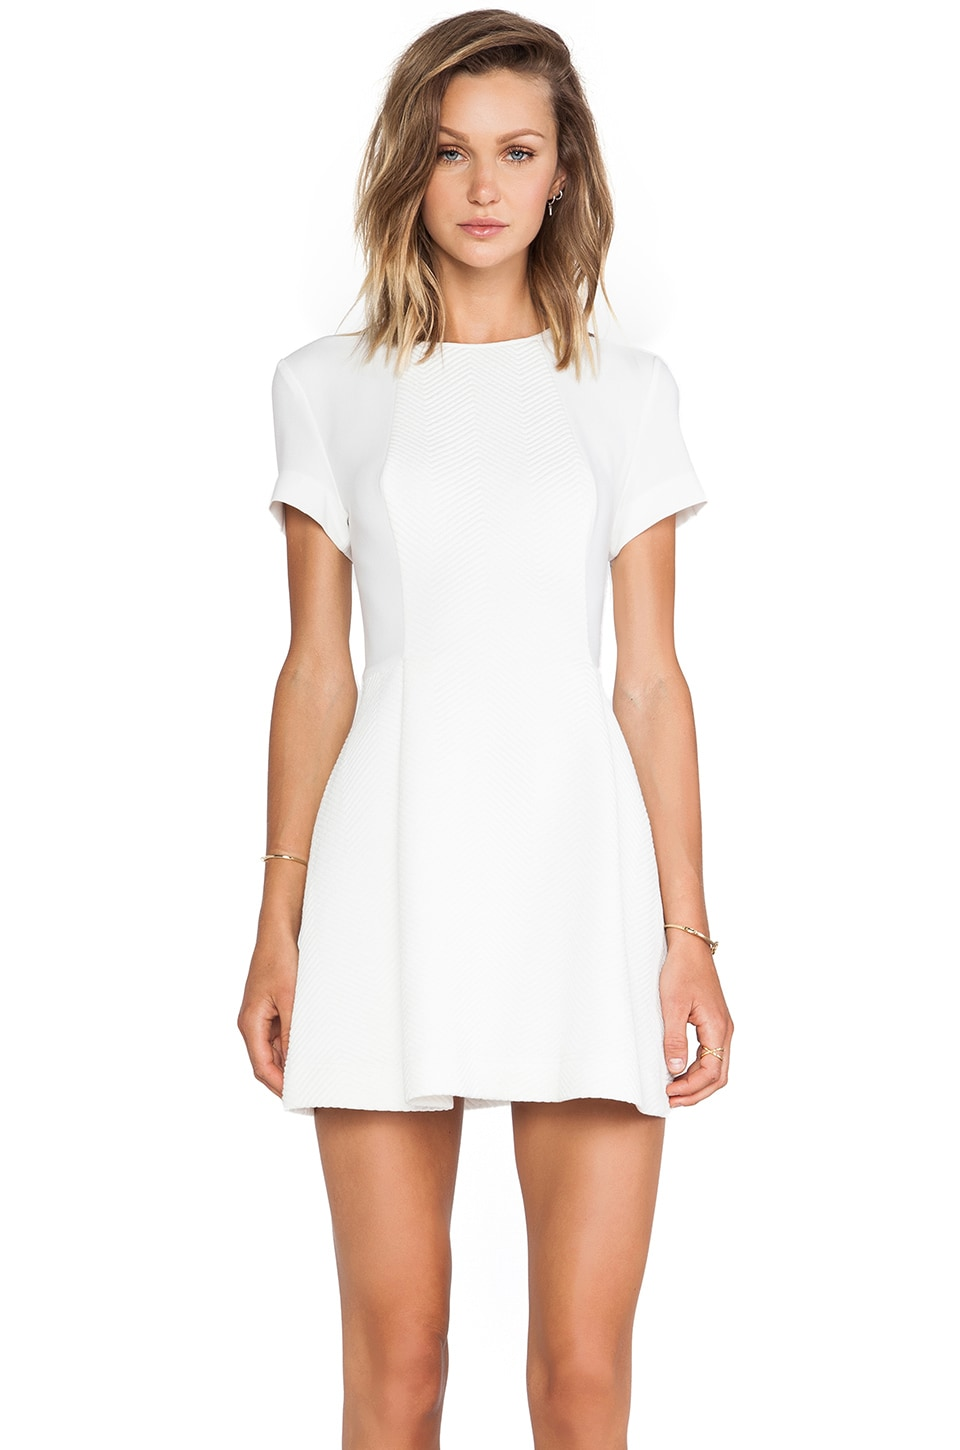 The Fifth Label Hyper Paradise Dress in White